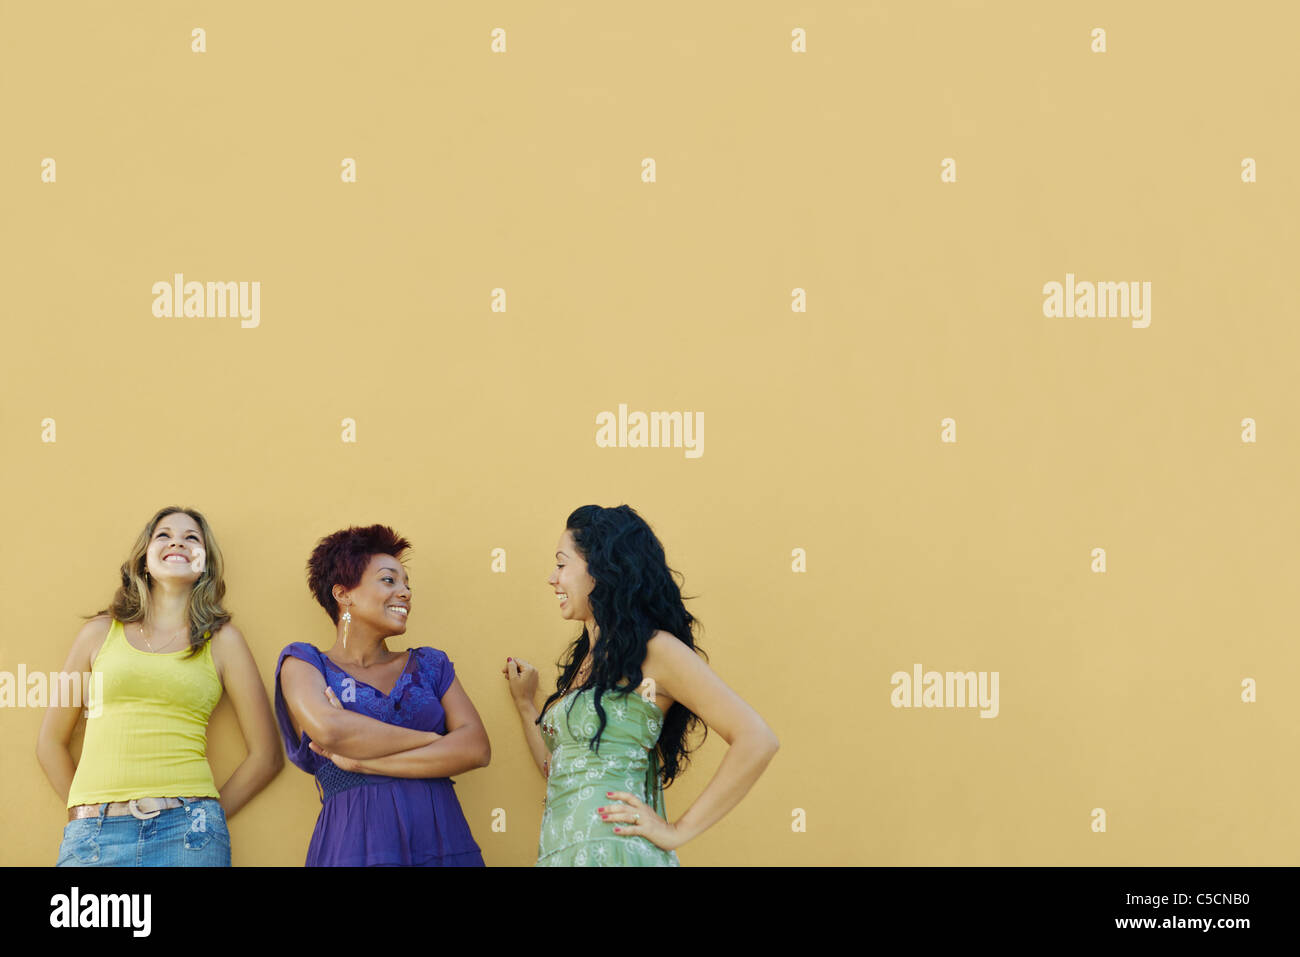 group of three female hispanic friends leaning on yellow wall and laughing. Horizontal shape, waist up, copy space - Stock Image